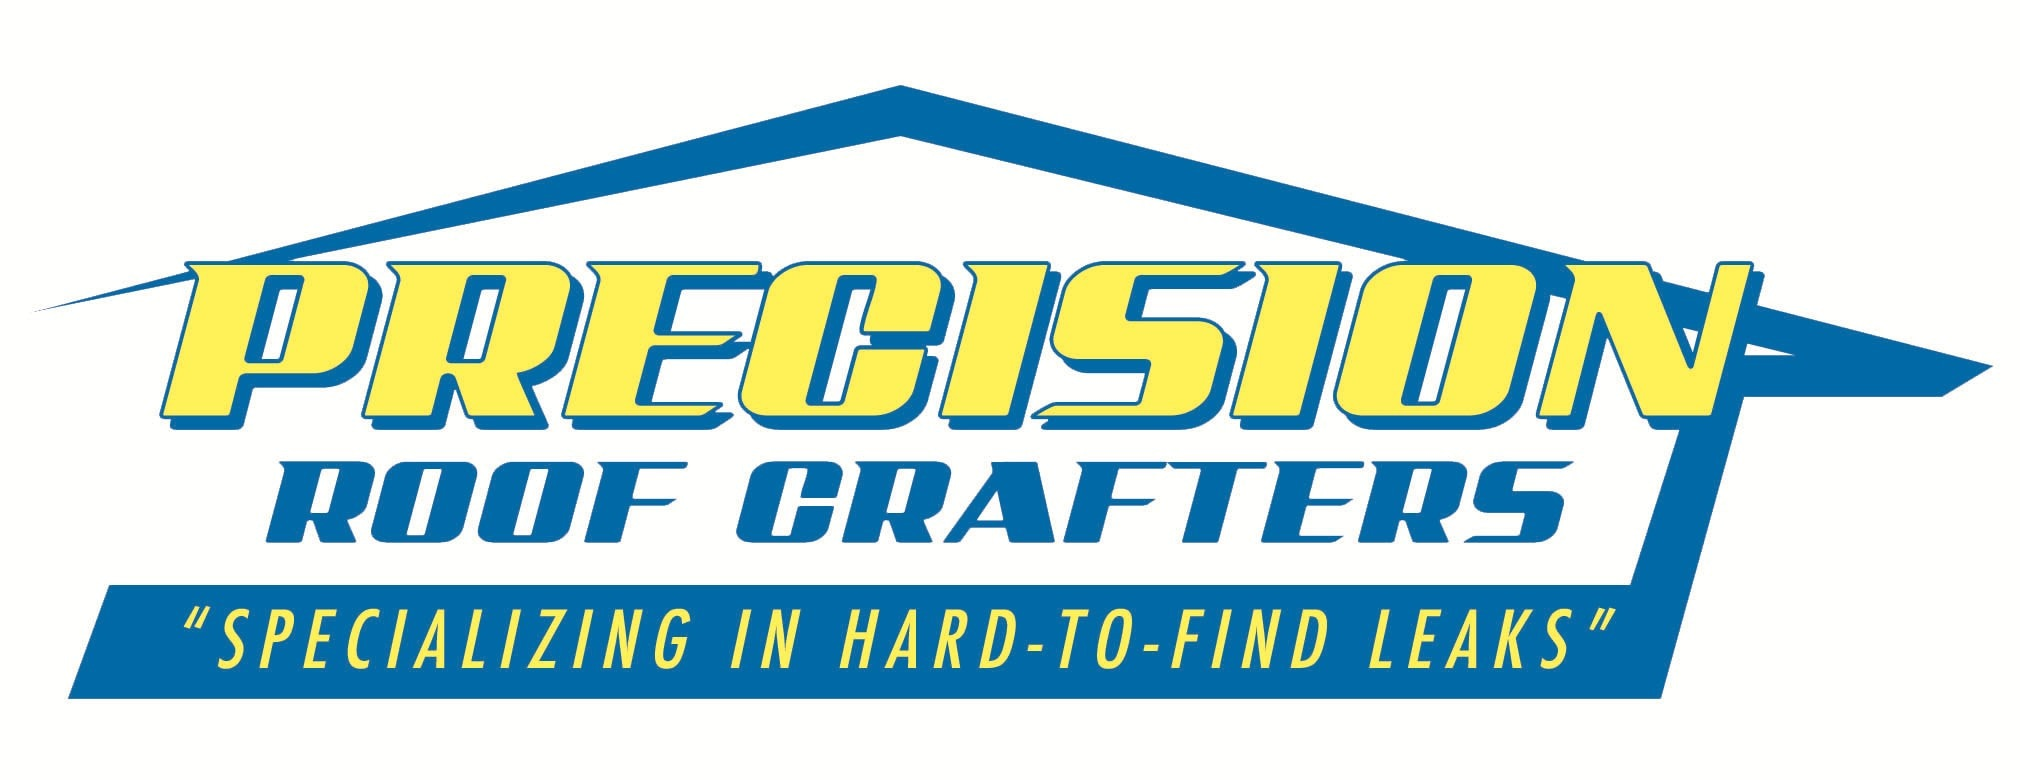 Precision Roof Crafters, Inc. logo